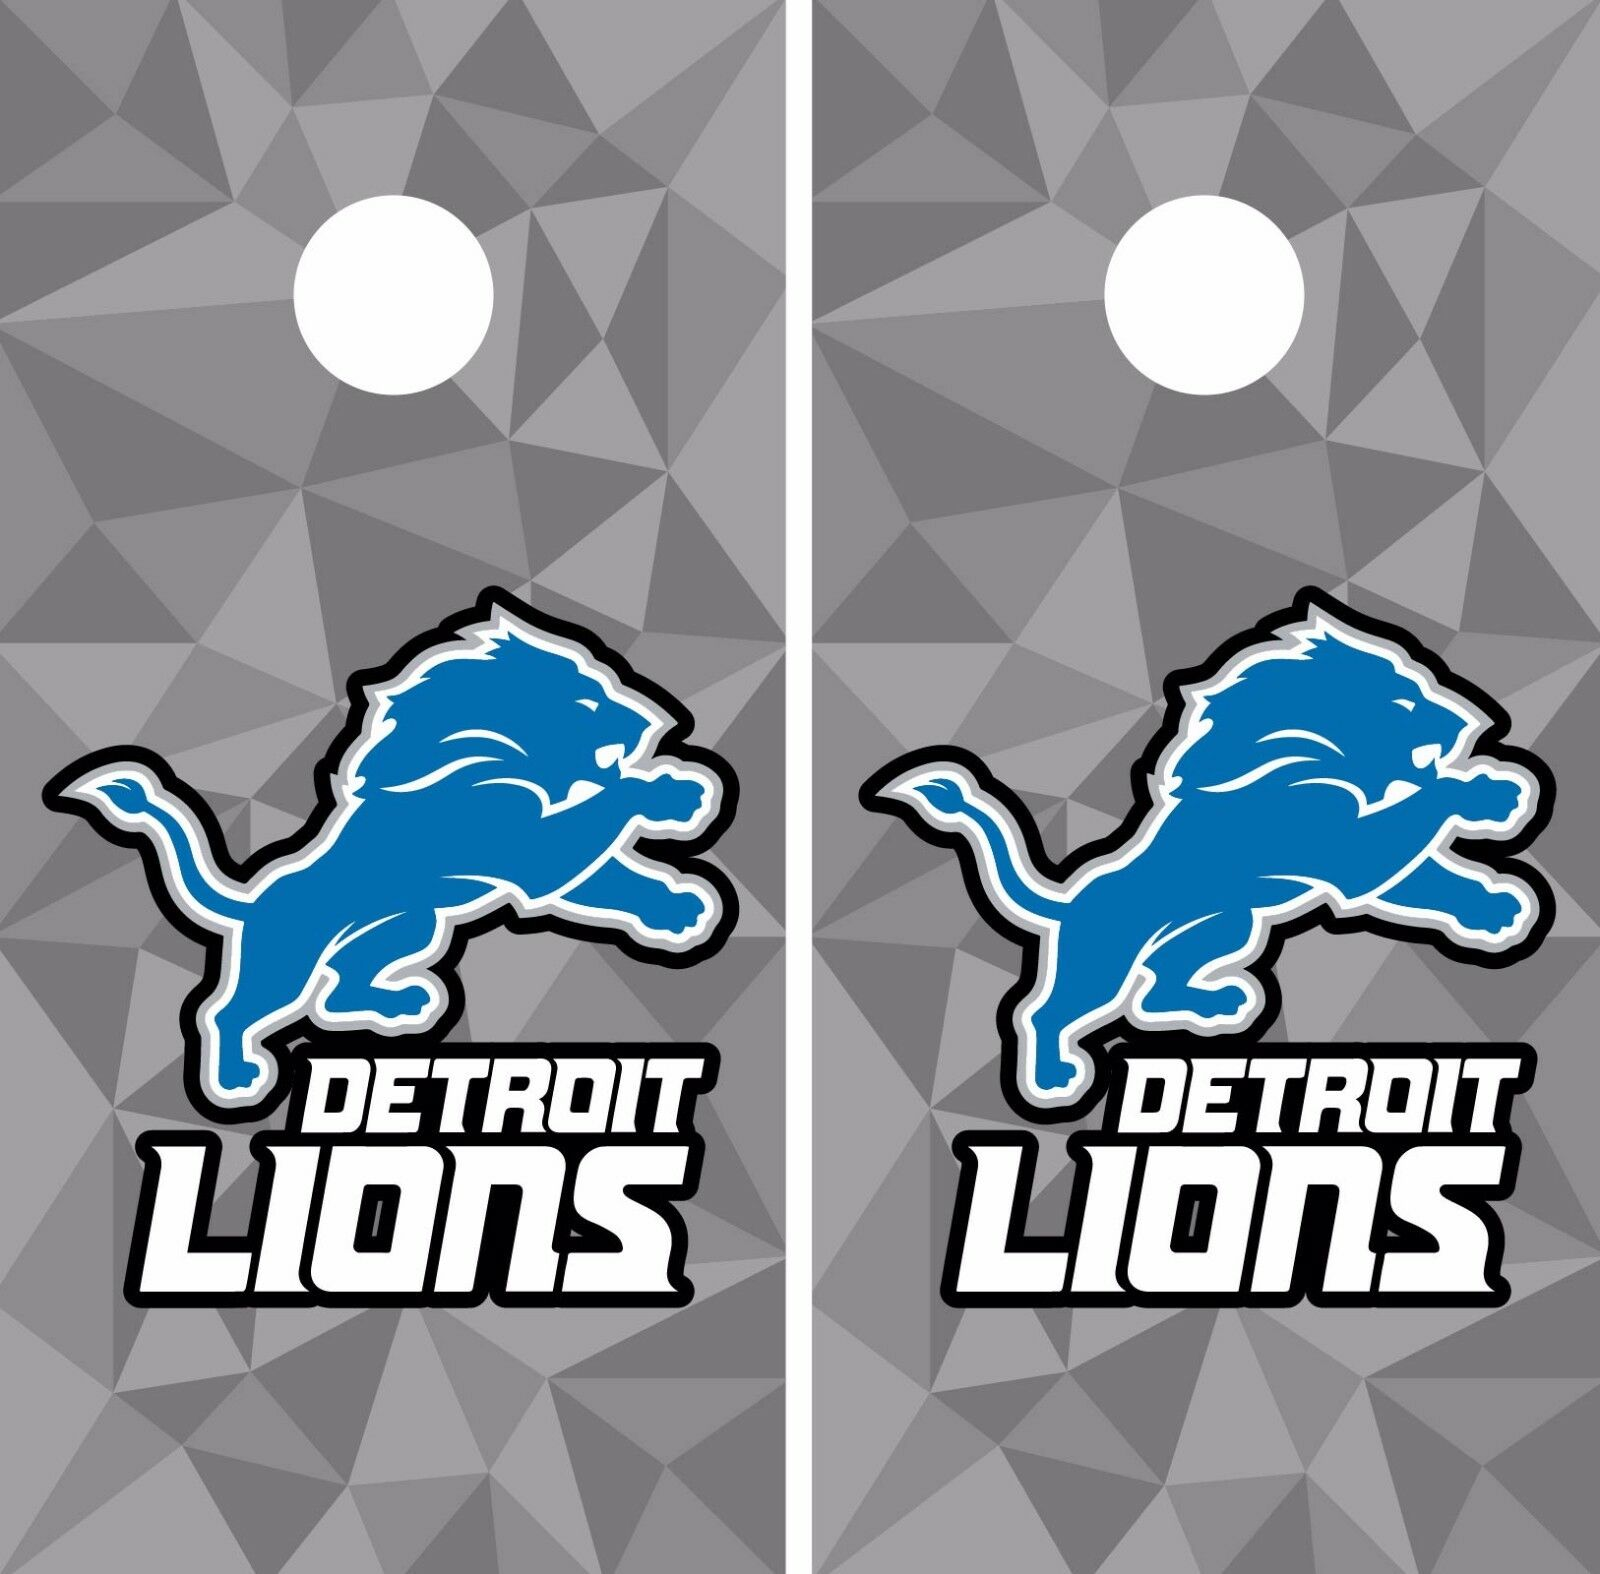 Detroit  Lions Cornhole Skin Wrap NFL Football Flag Art Decor Vinyl Decal DR30  various sizes